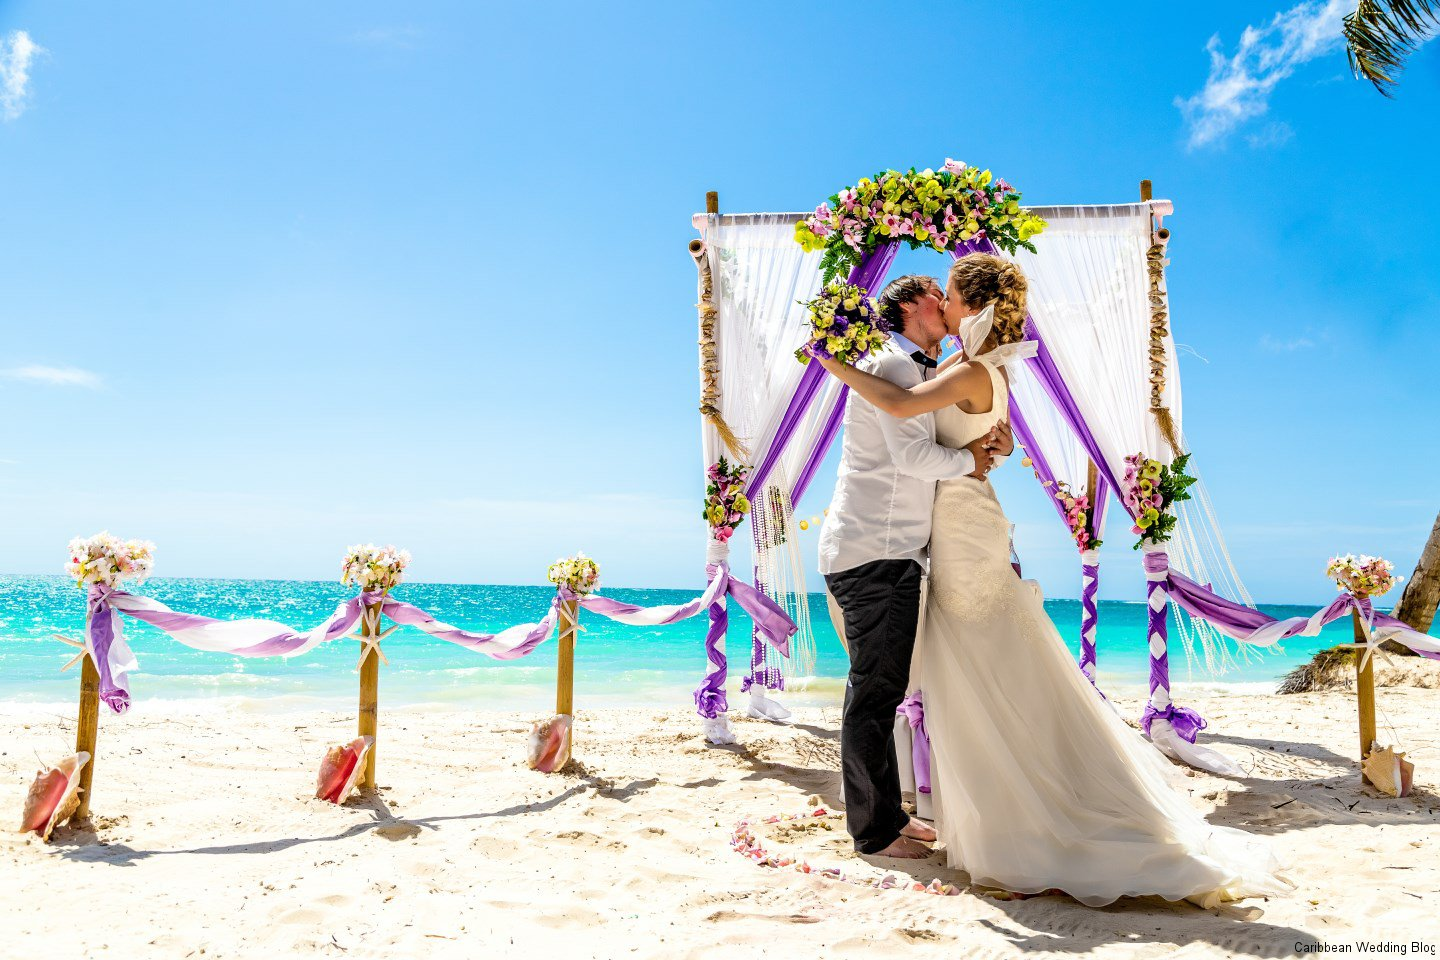 The Best Destination Wedding Locations In The Caribbean: Destination Wedding Locations On A Budget